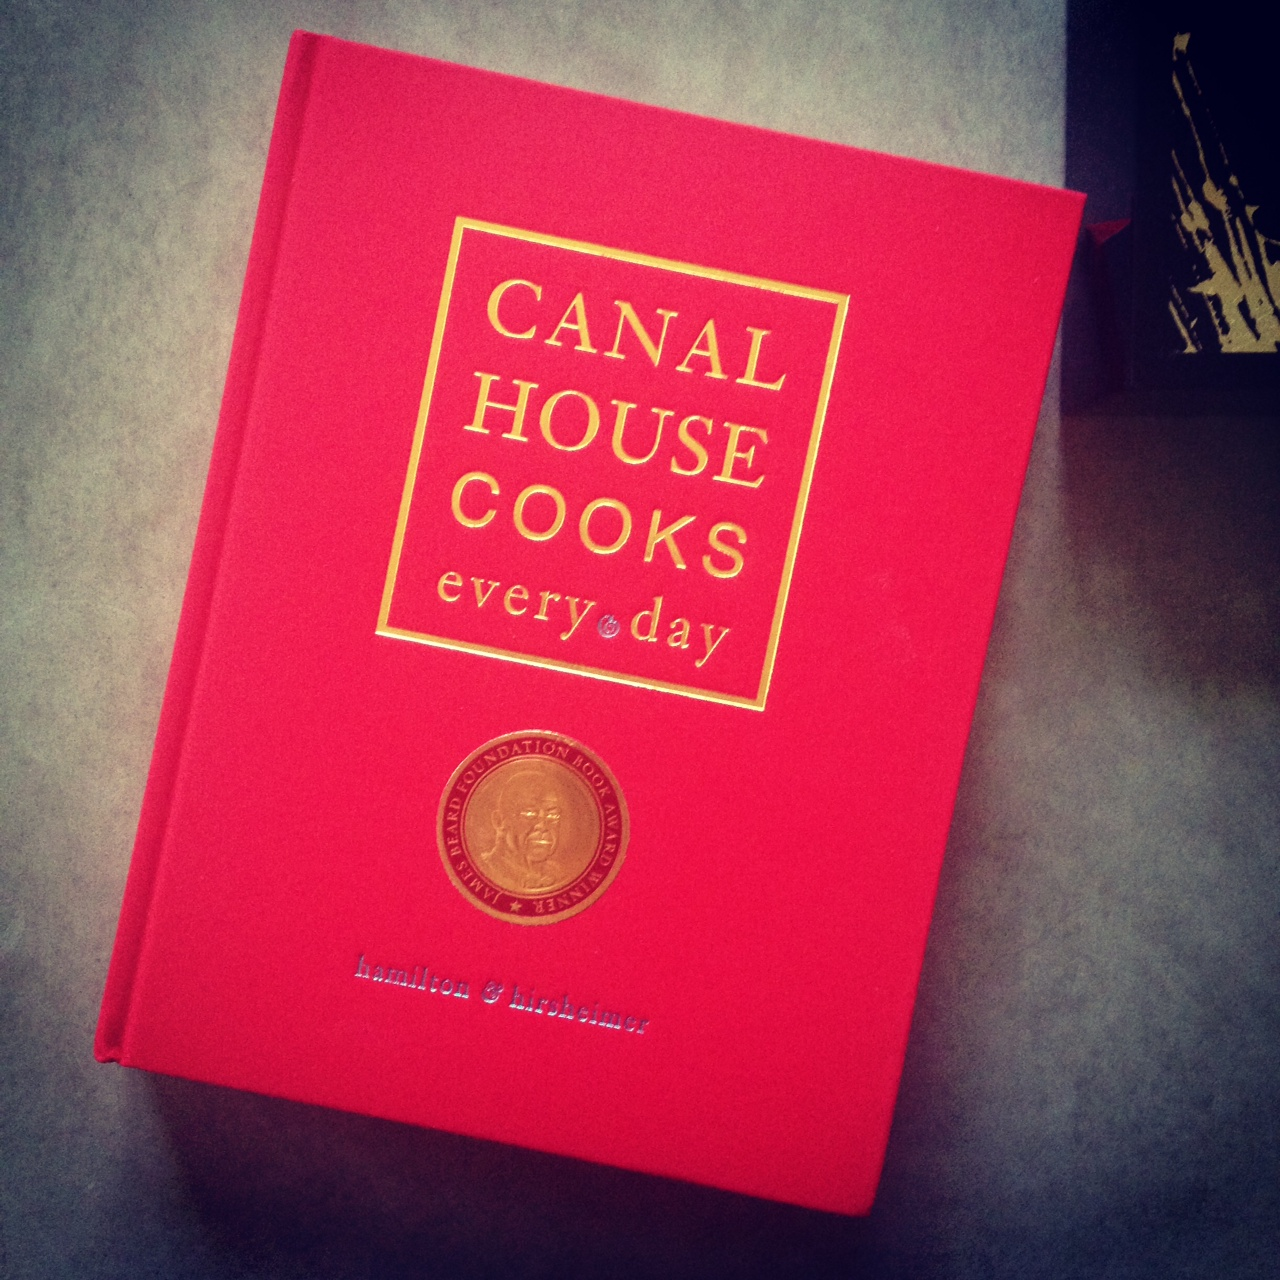 CanalHouseBook-WhatWouldGwynethDo